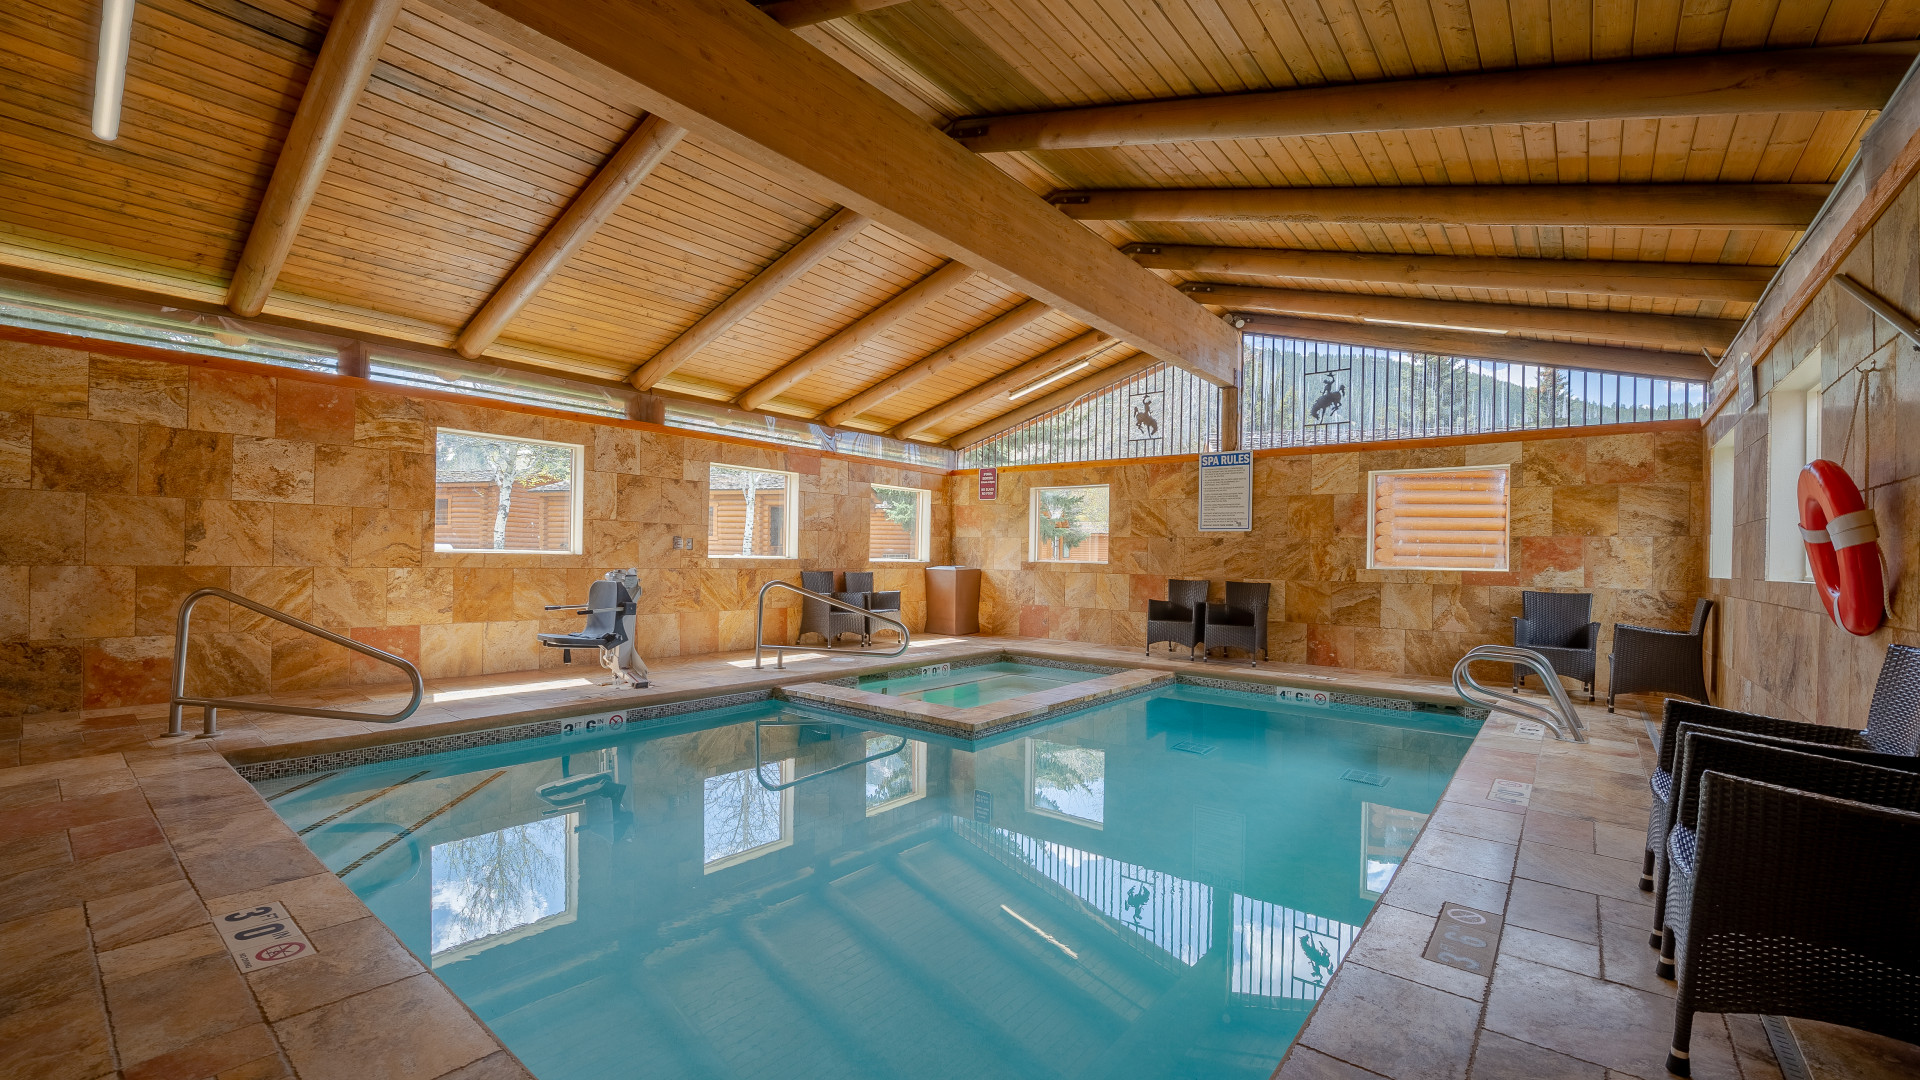 Relax and soak in the indoor pool and hot tub.